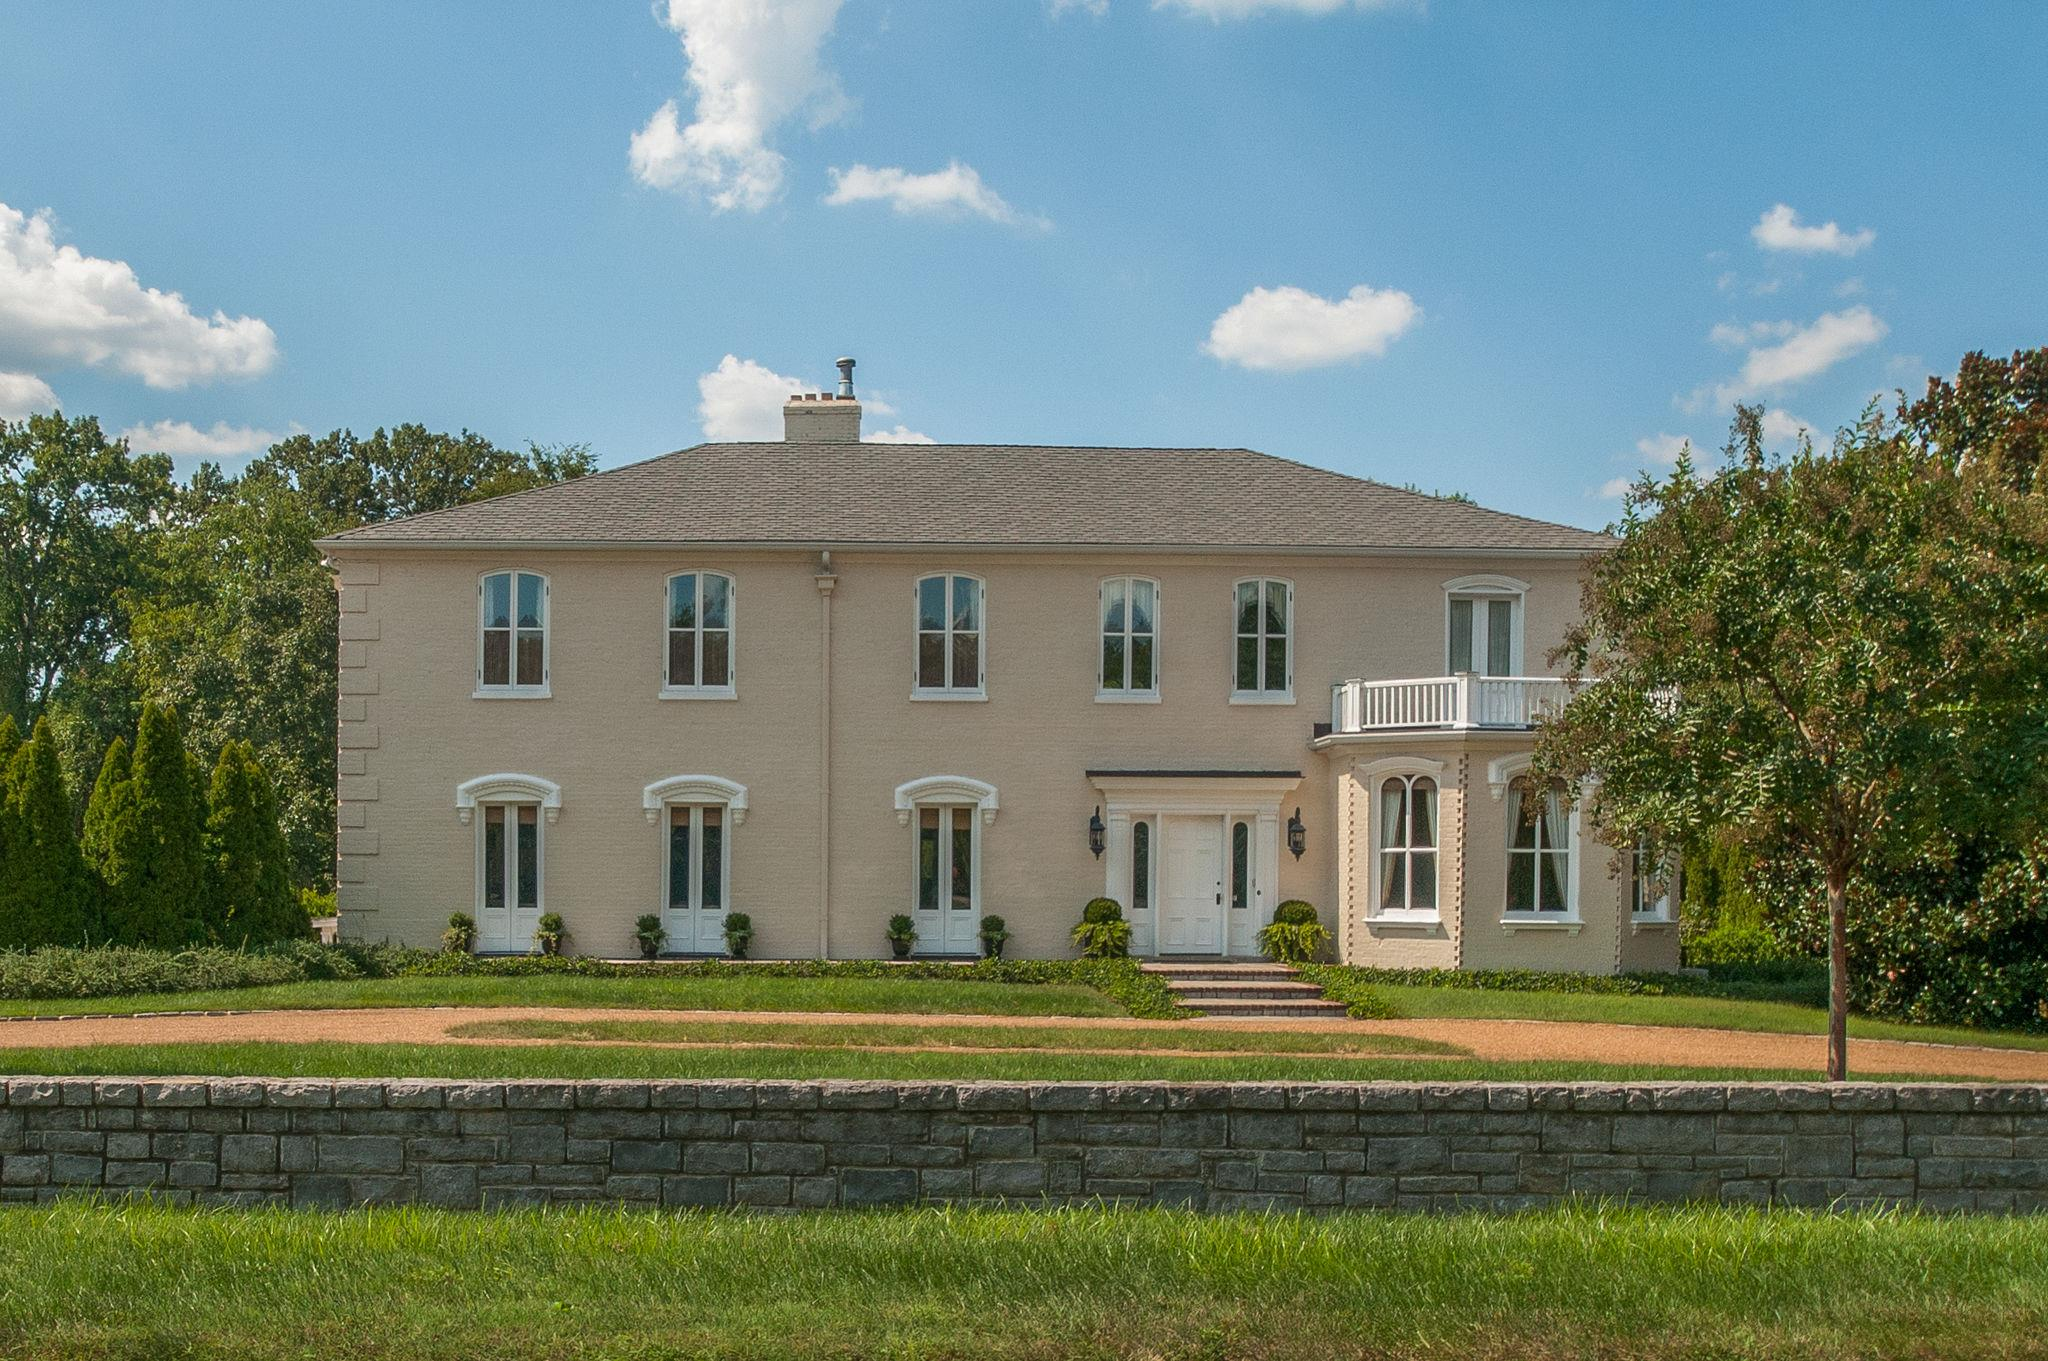 609 Belle Meade Blvd, one of homes for sale in Belle Meade